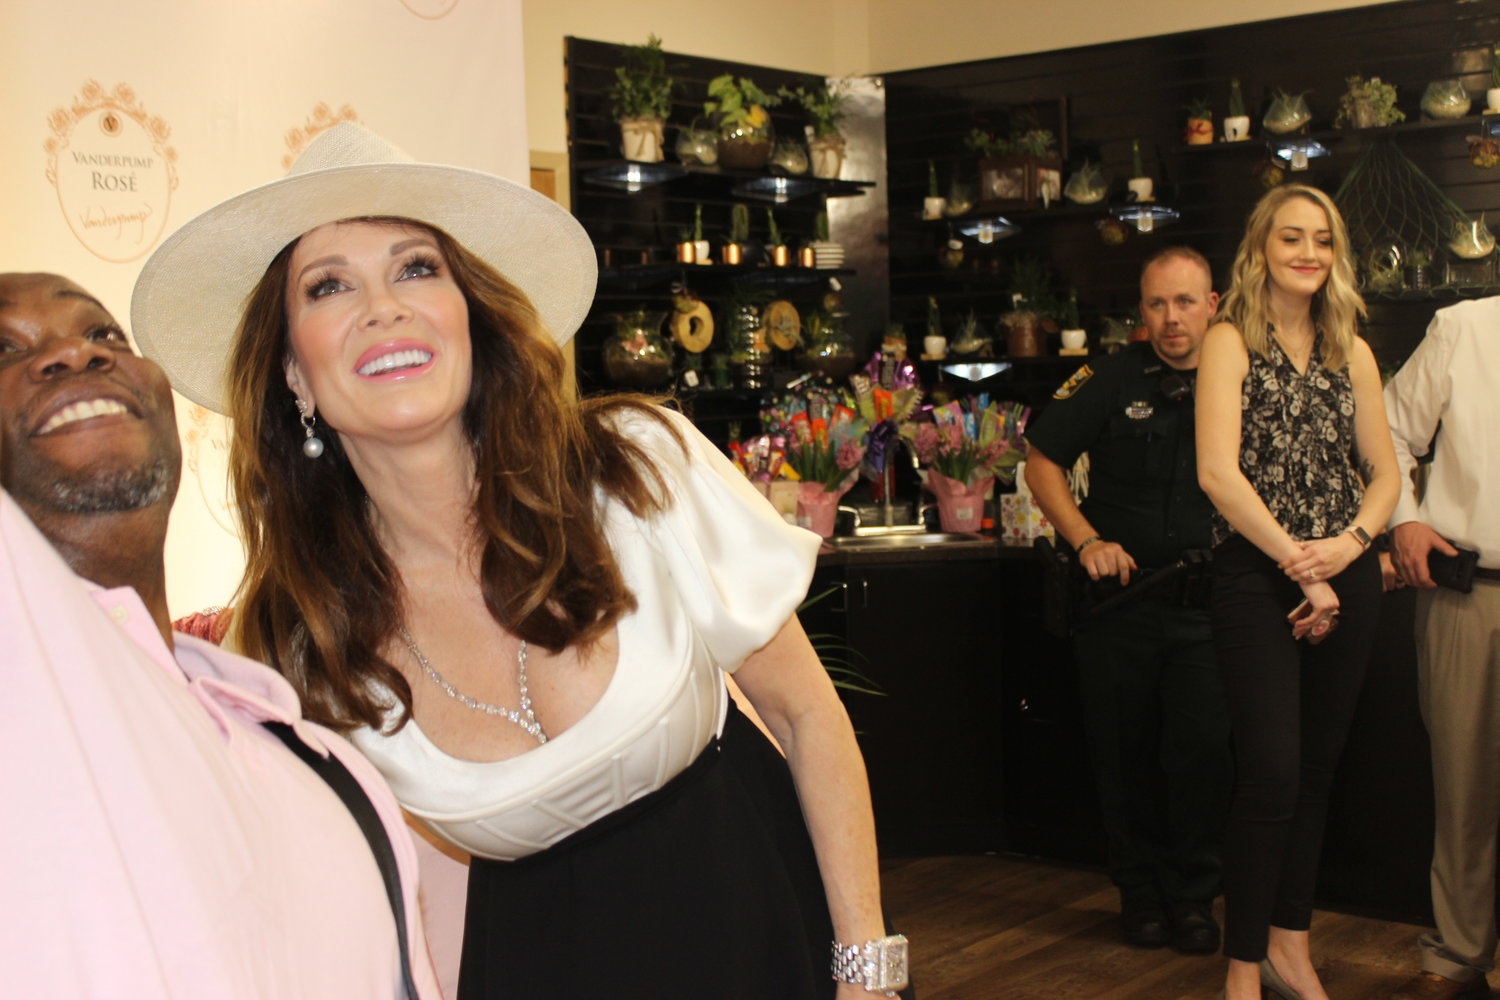 Vanderpump takes a selfie with a fan at the Ponte Vedra Beach event.